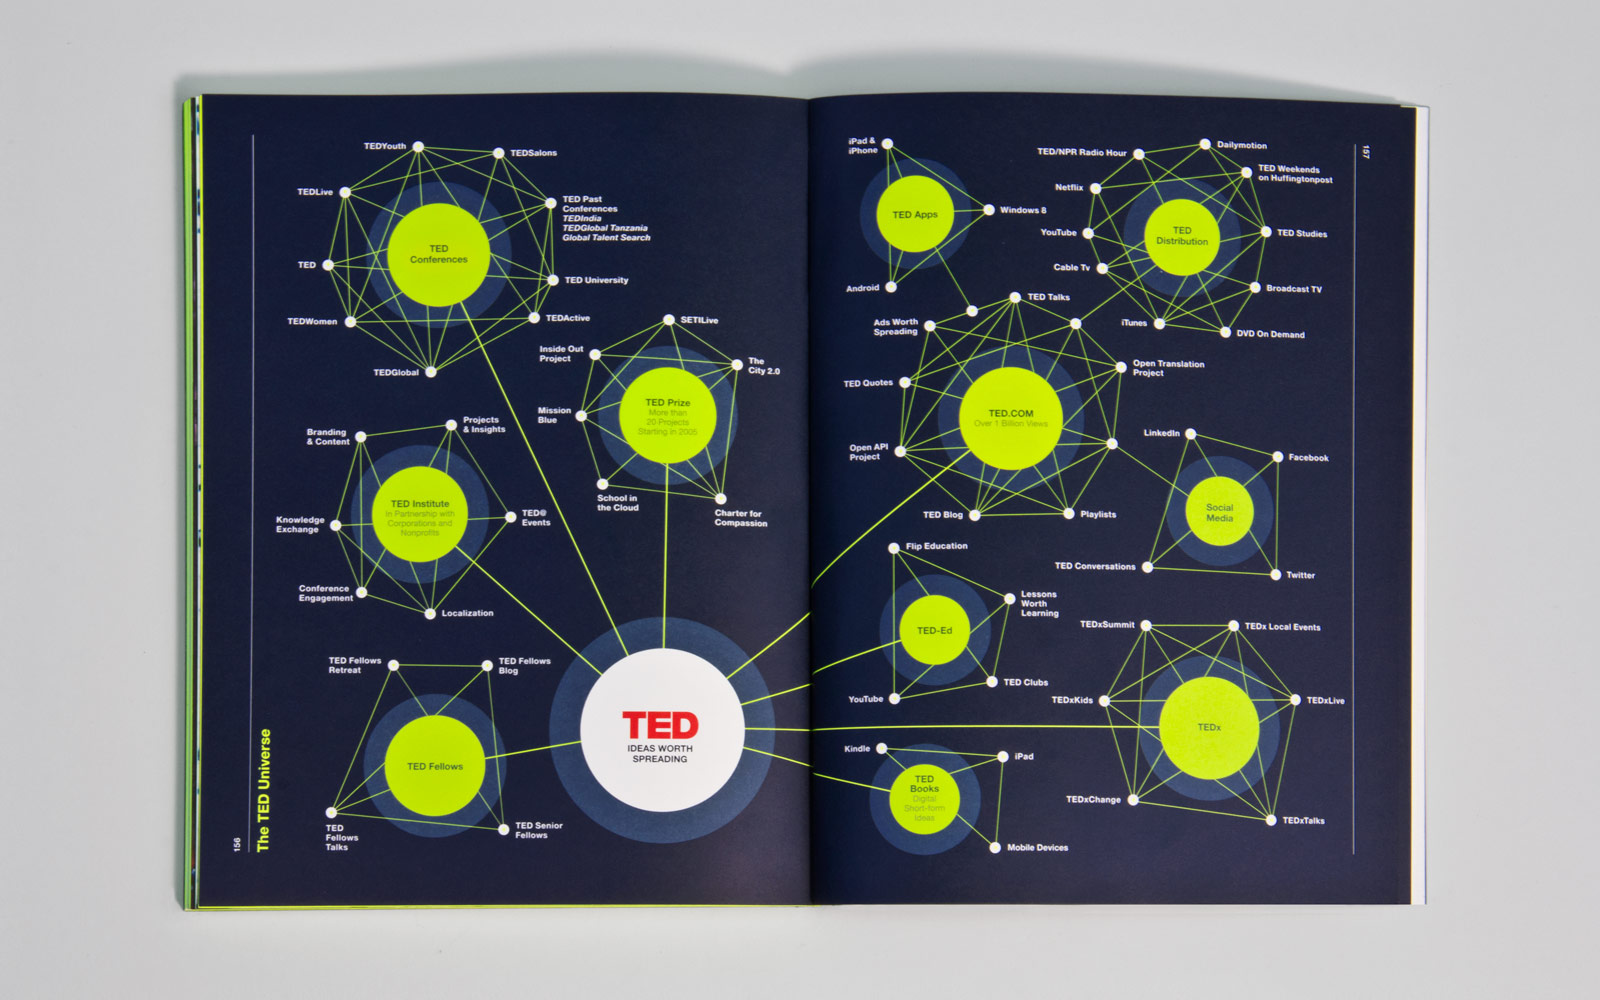 TED_global2013_web_universe